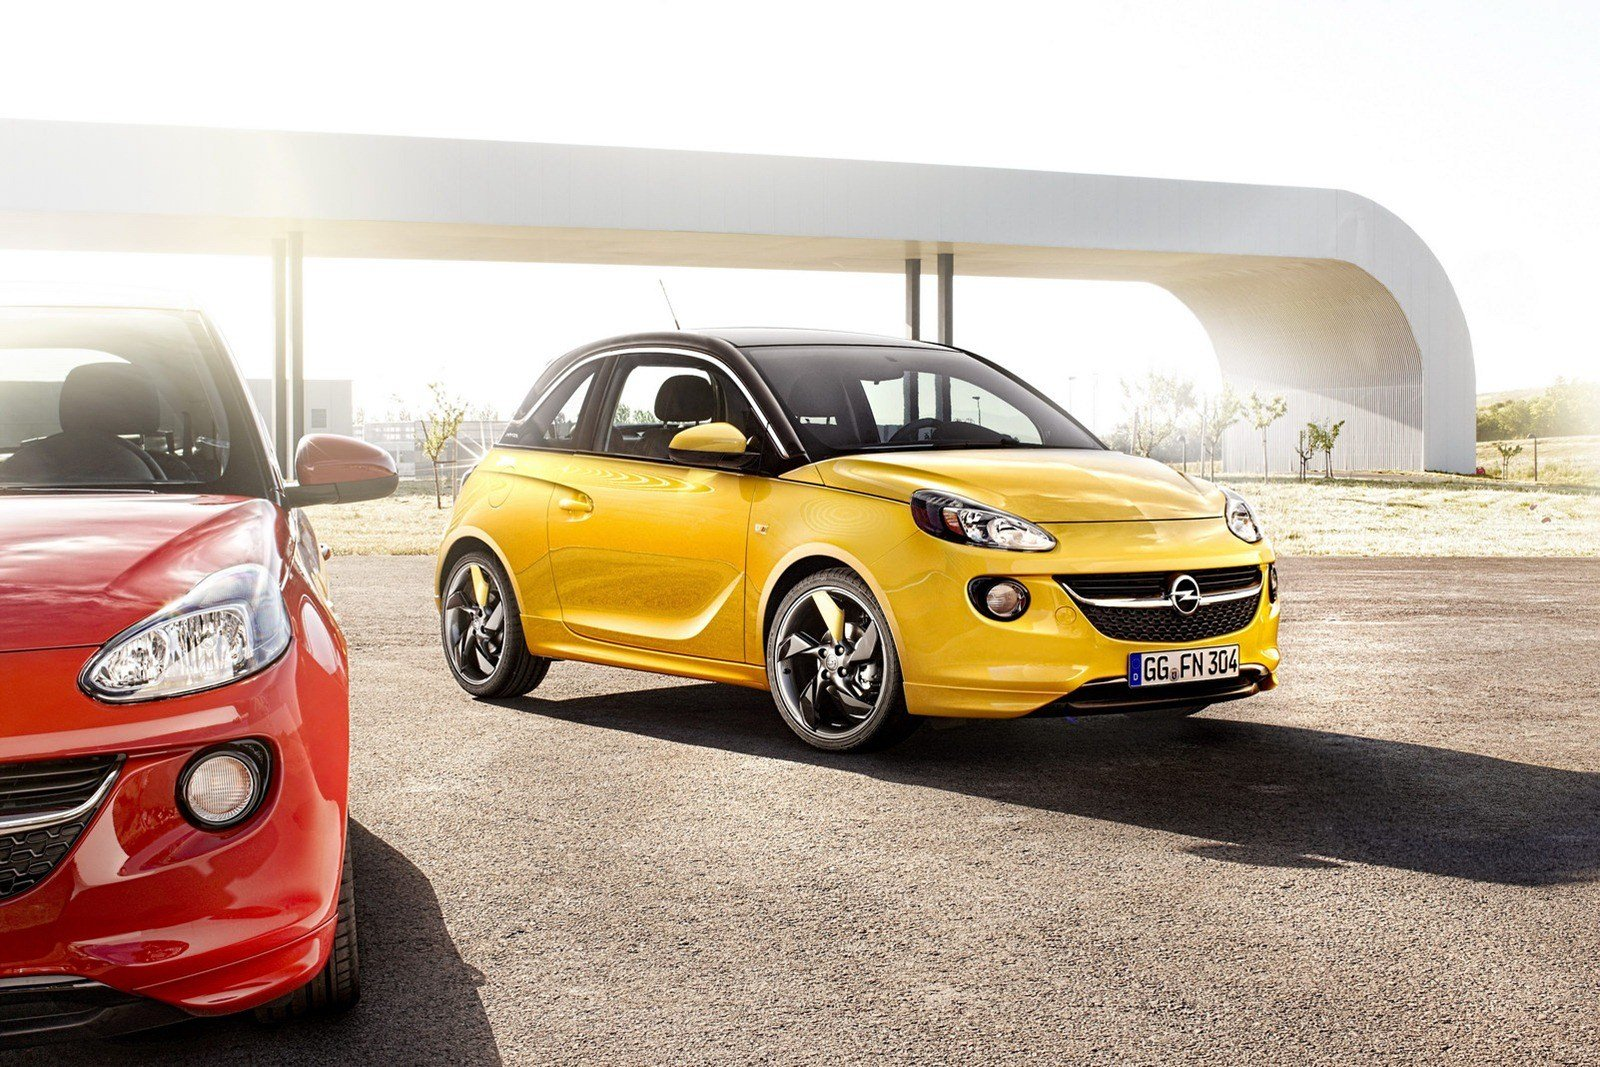 New Opel Adam Price Starts At 11 500 Euros Autotribute On This Month